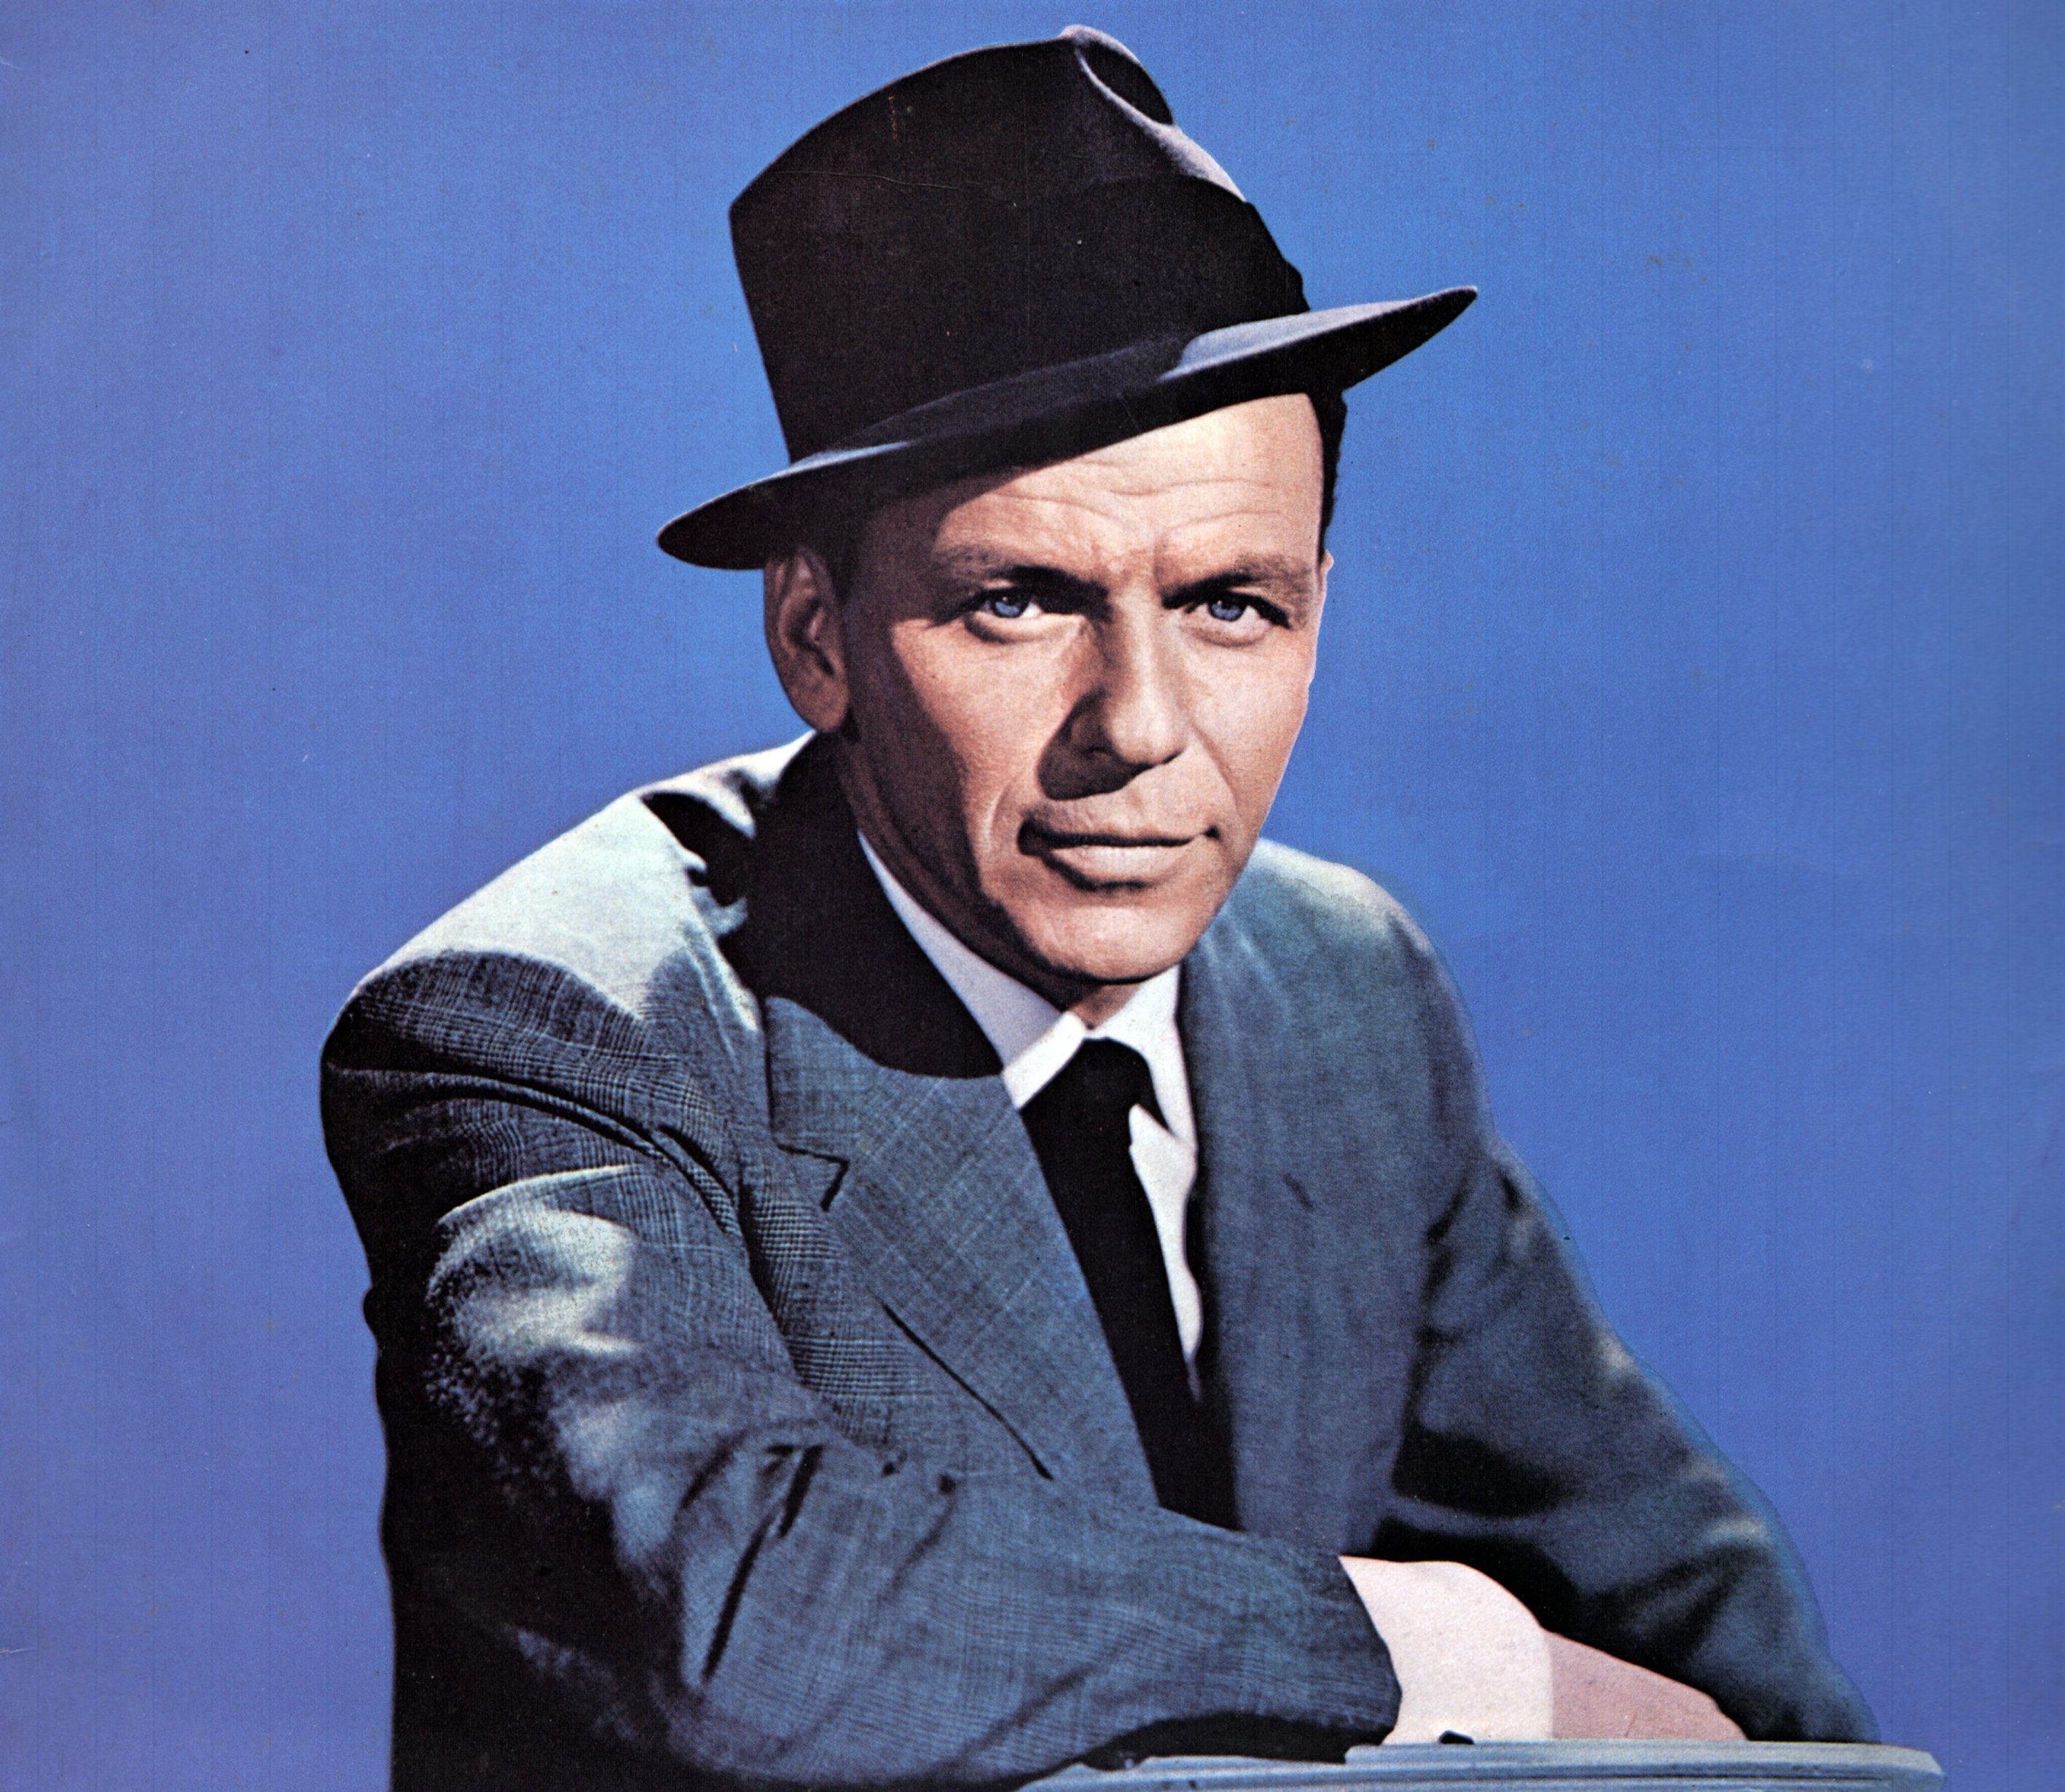 UNSPECIFIED - JANUARY 01: (AUSTRALIA OUT) Photo of Frank SINATRA; posed, studio (Photo by GAB Archive/Redferns)